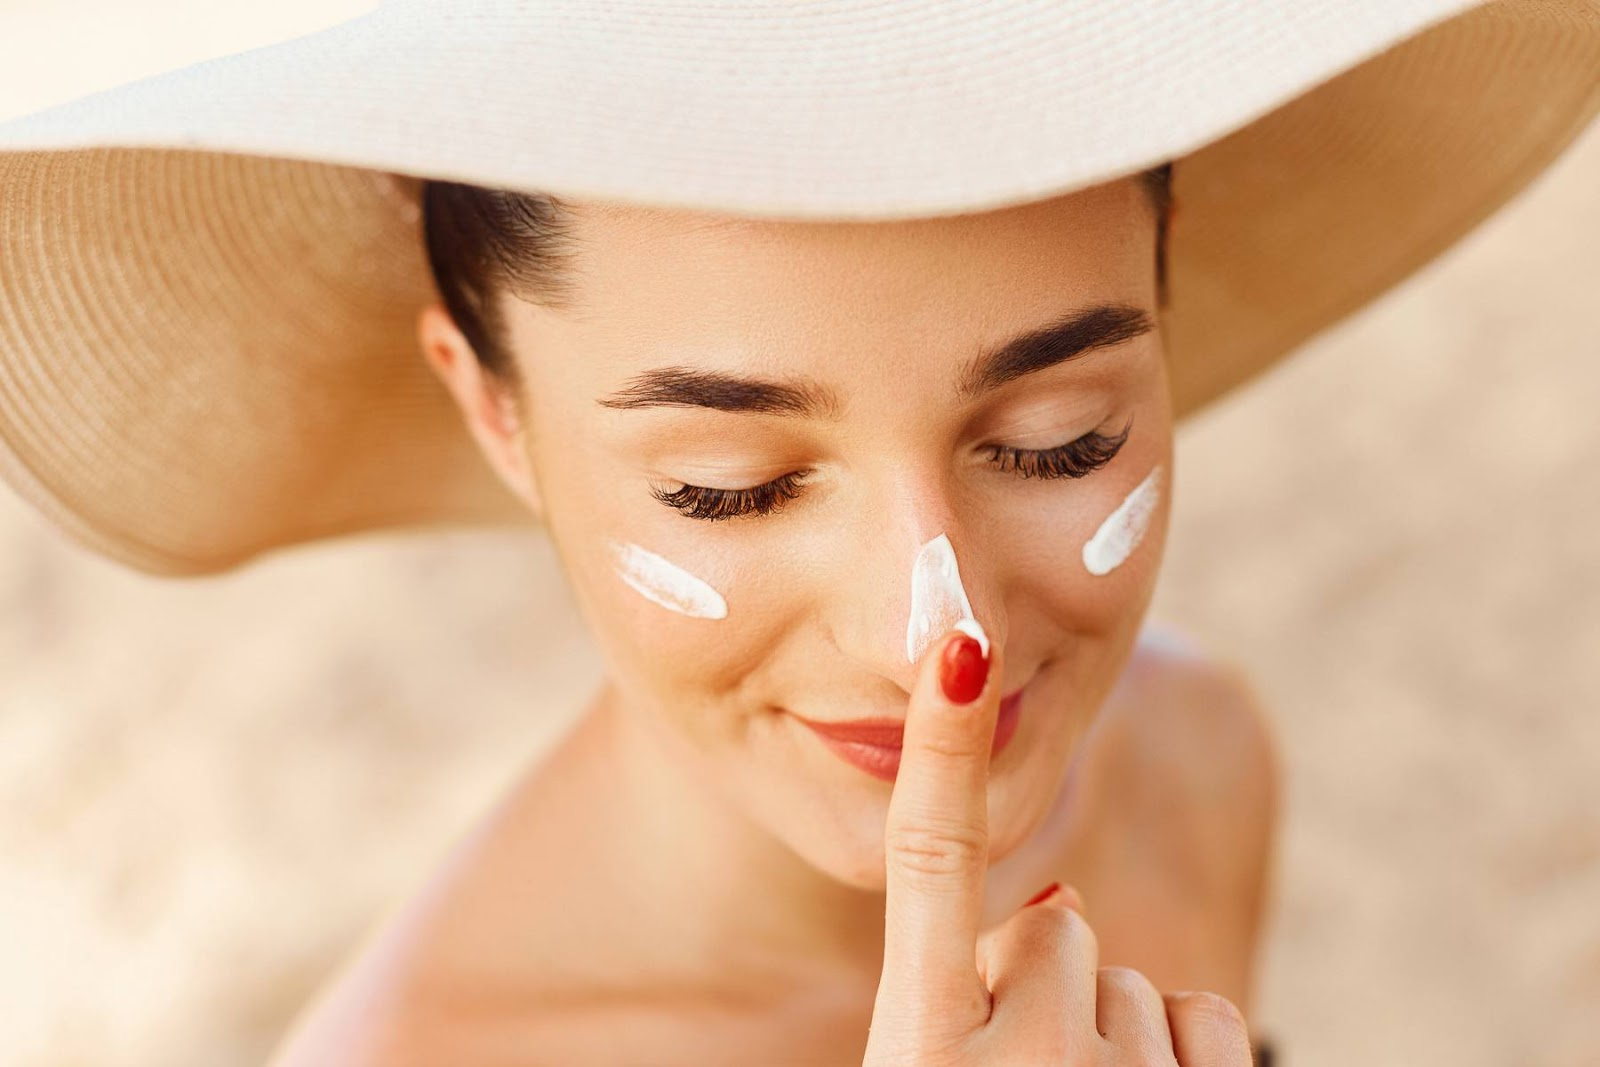 A young woman wearing a sun hat applies sunscreen.